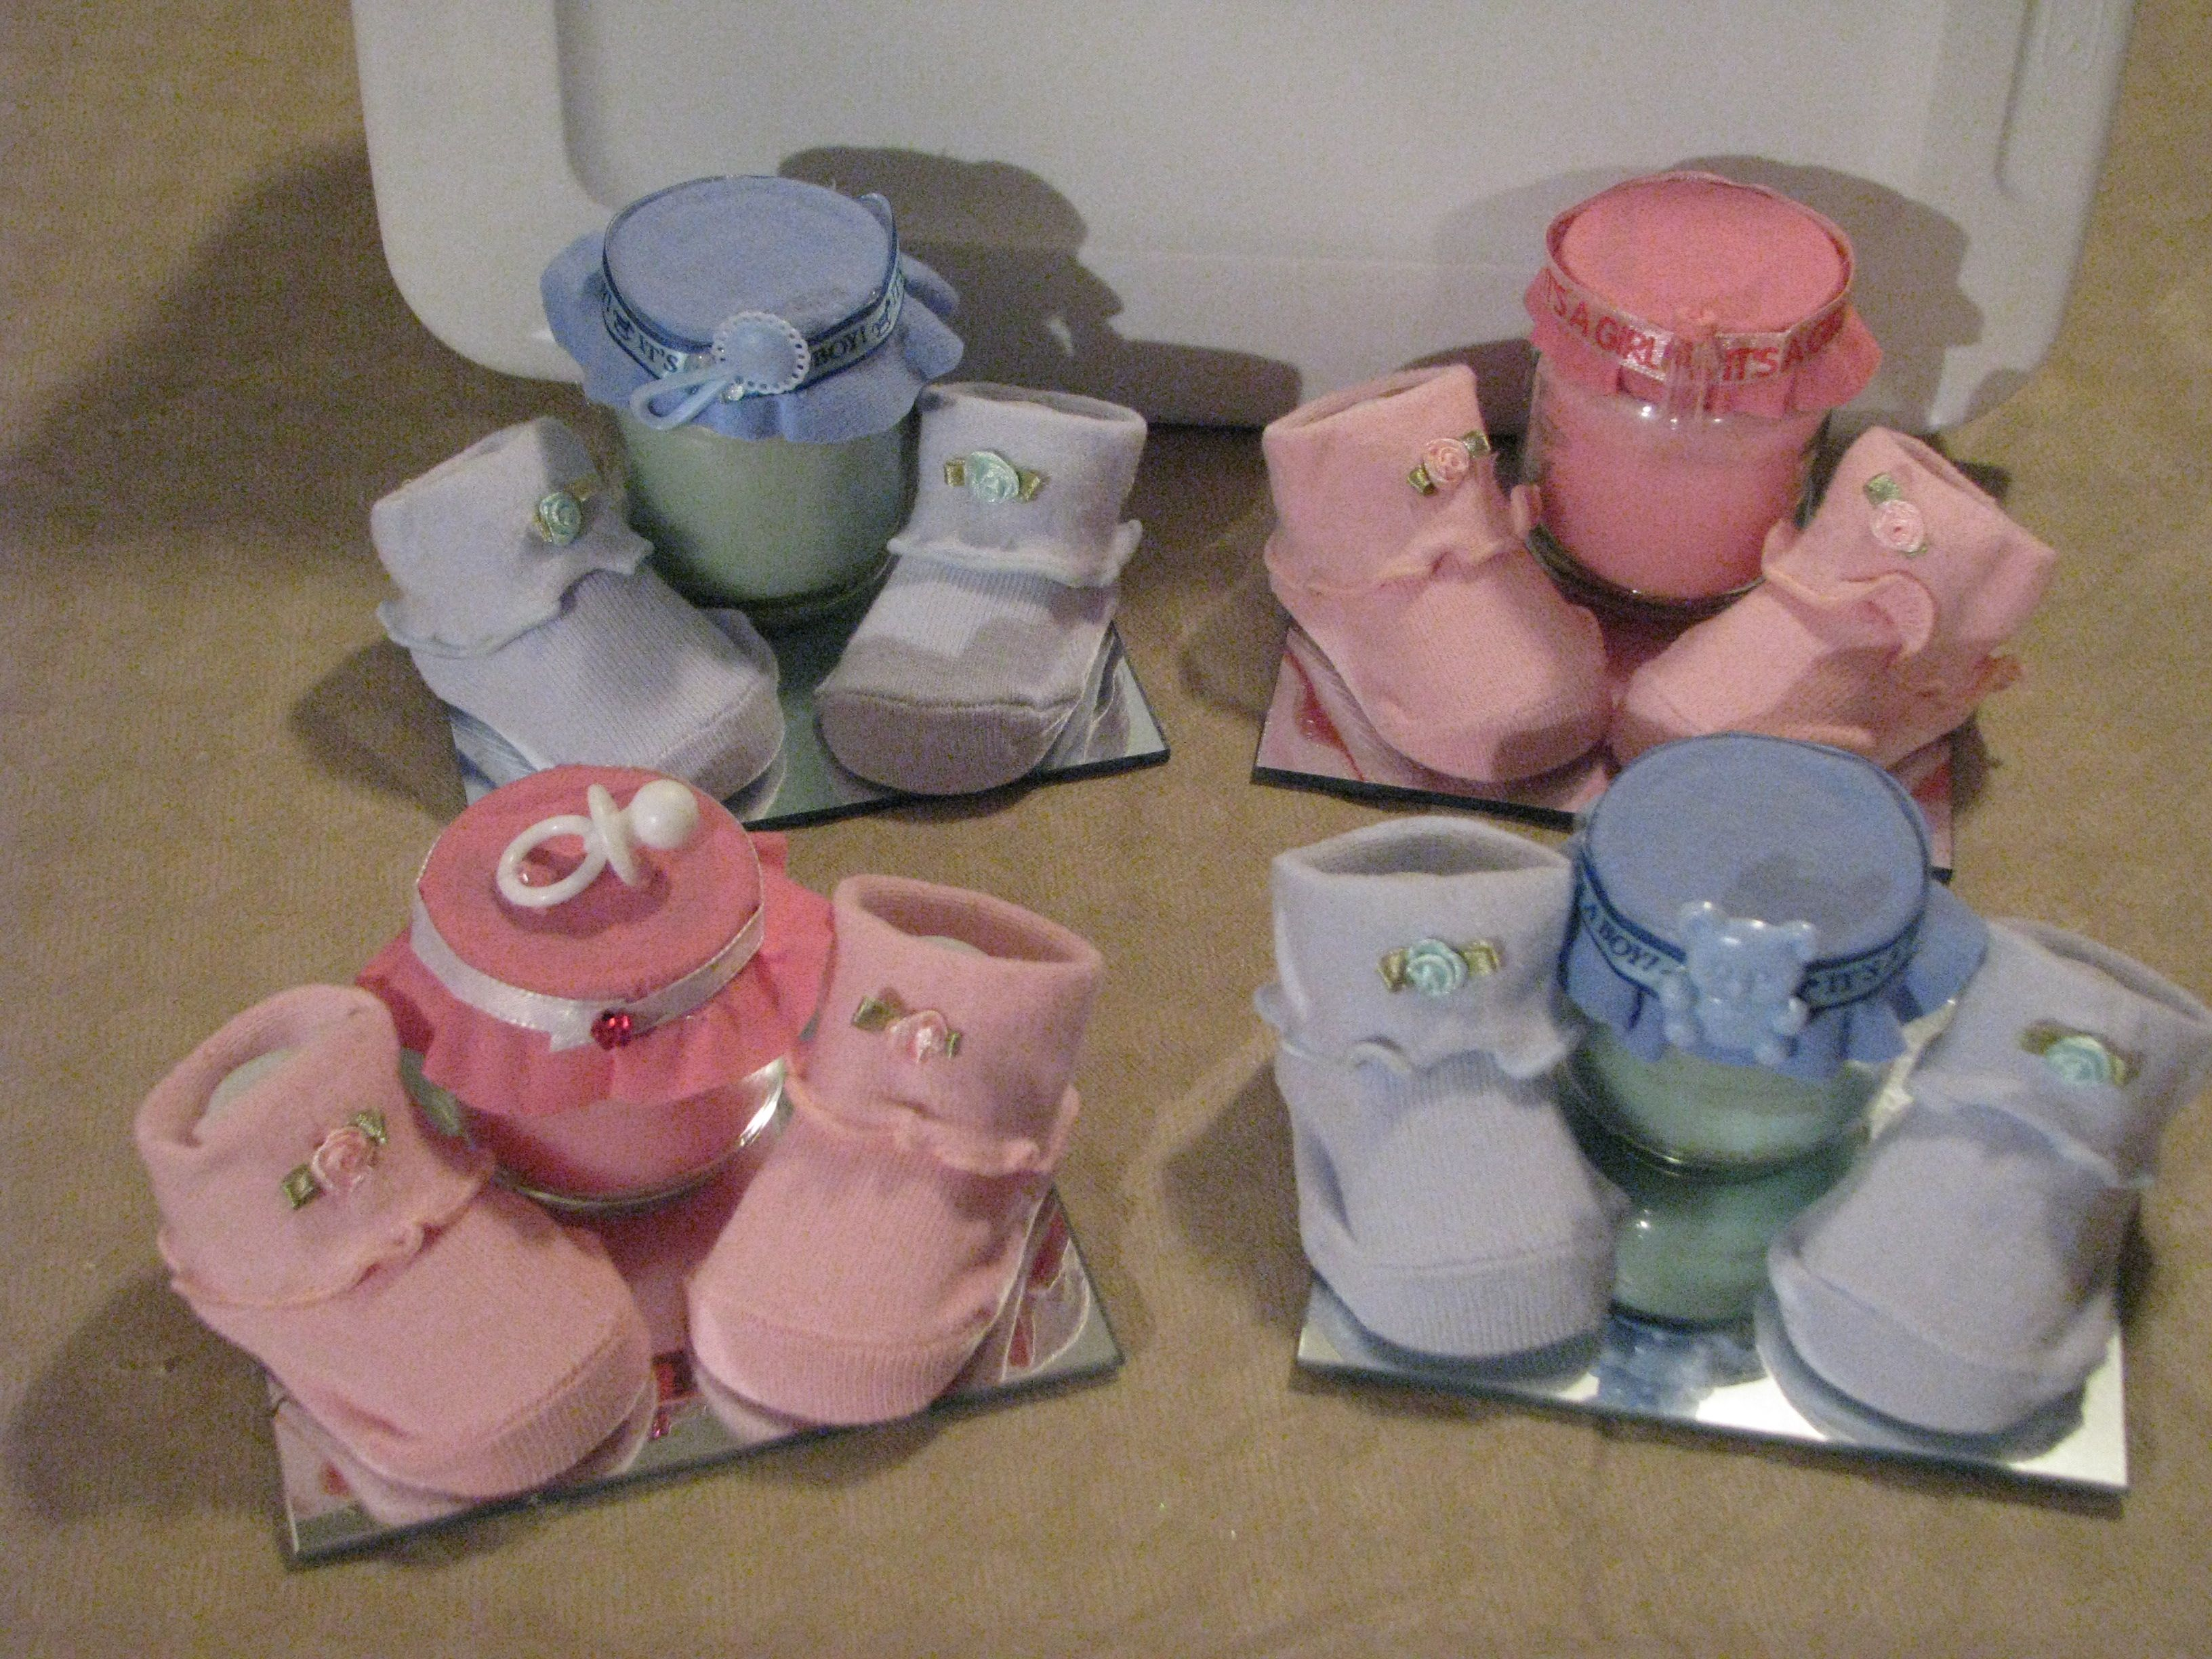 Baby booties a candle and pacifier centerpiece for your baby ...